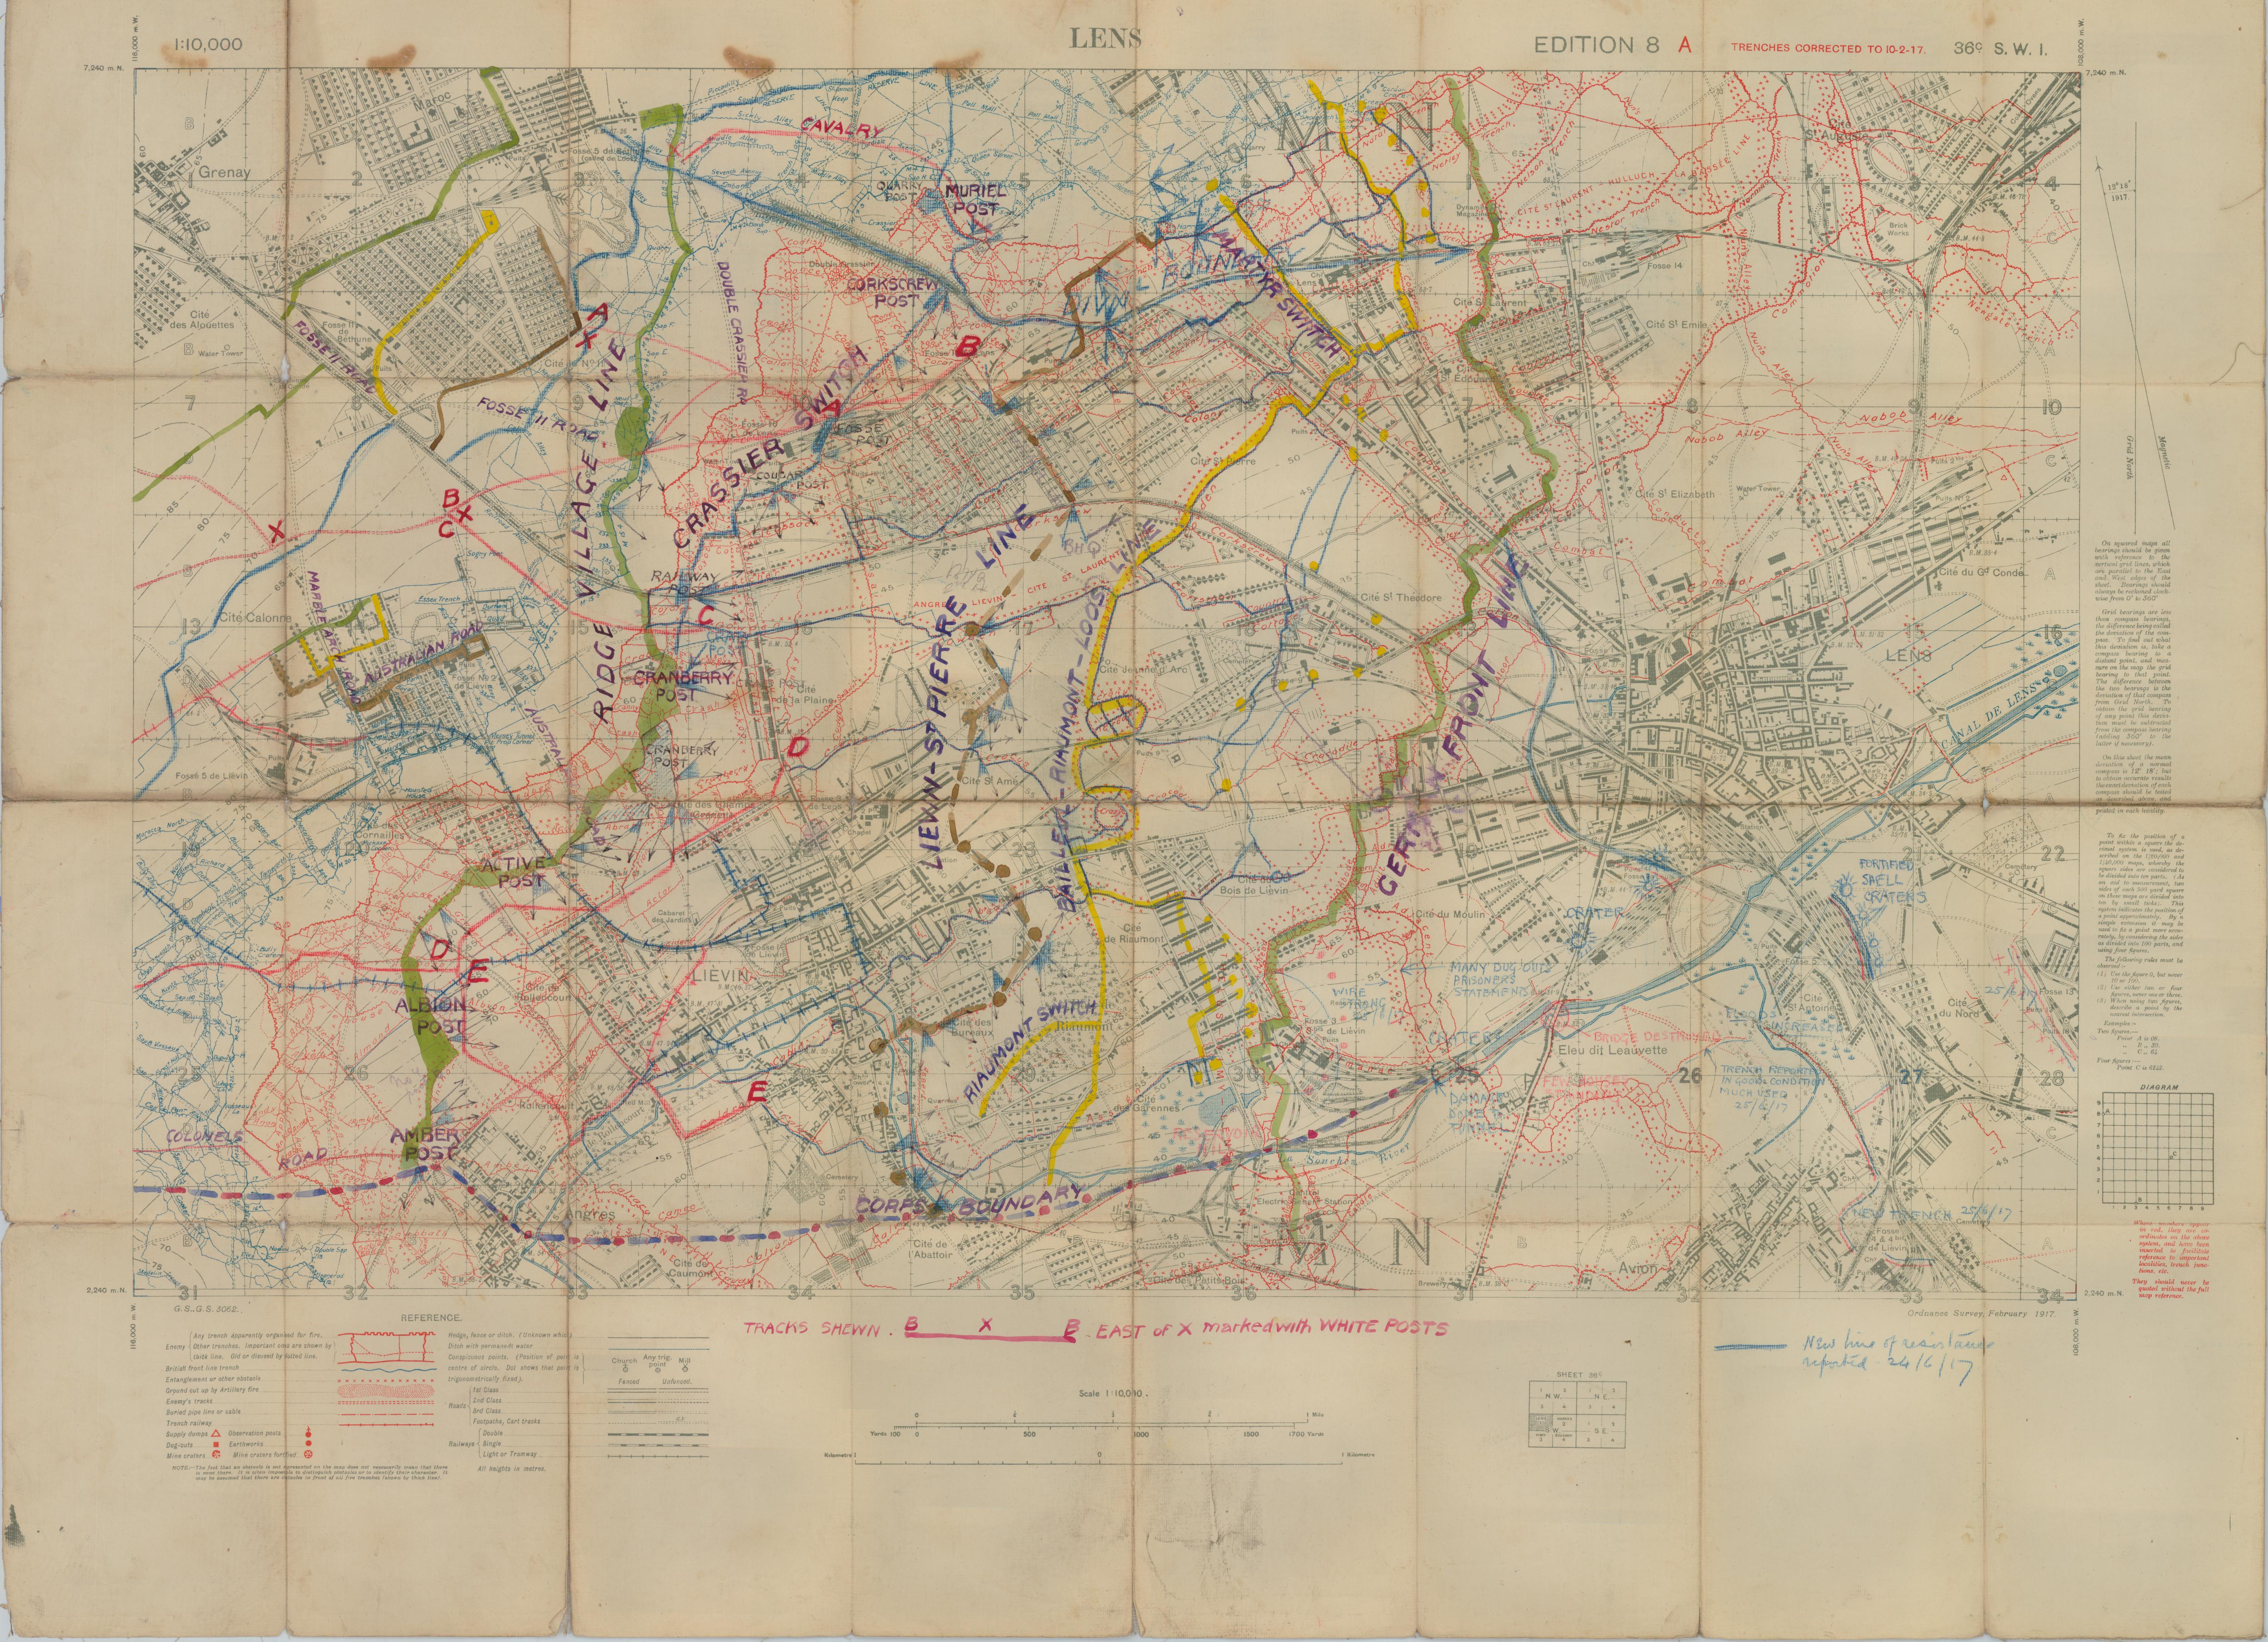 File:Battle of Hill 70 - local planning map.jpg - Wikimedia Commons